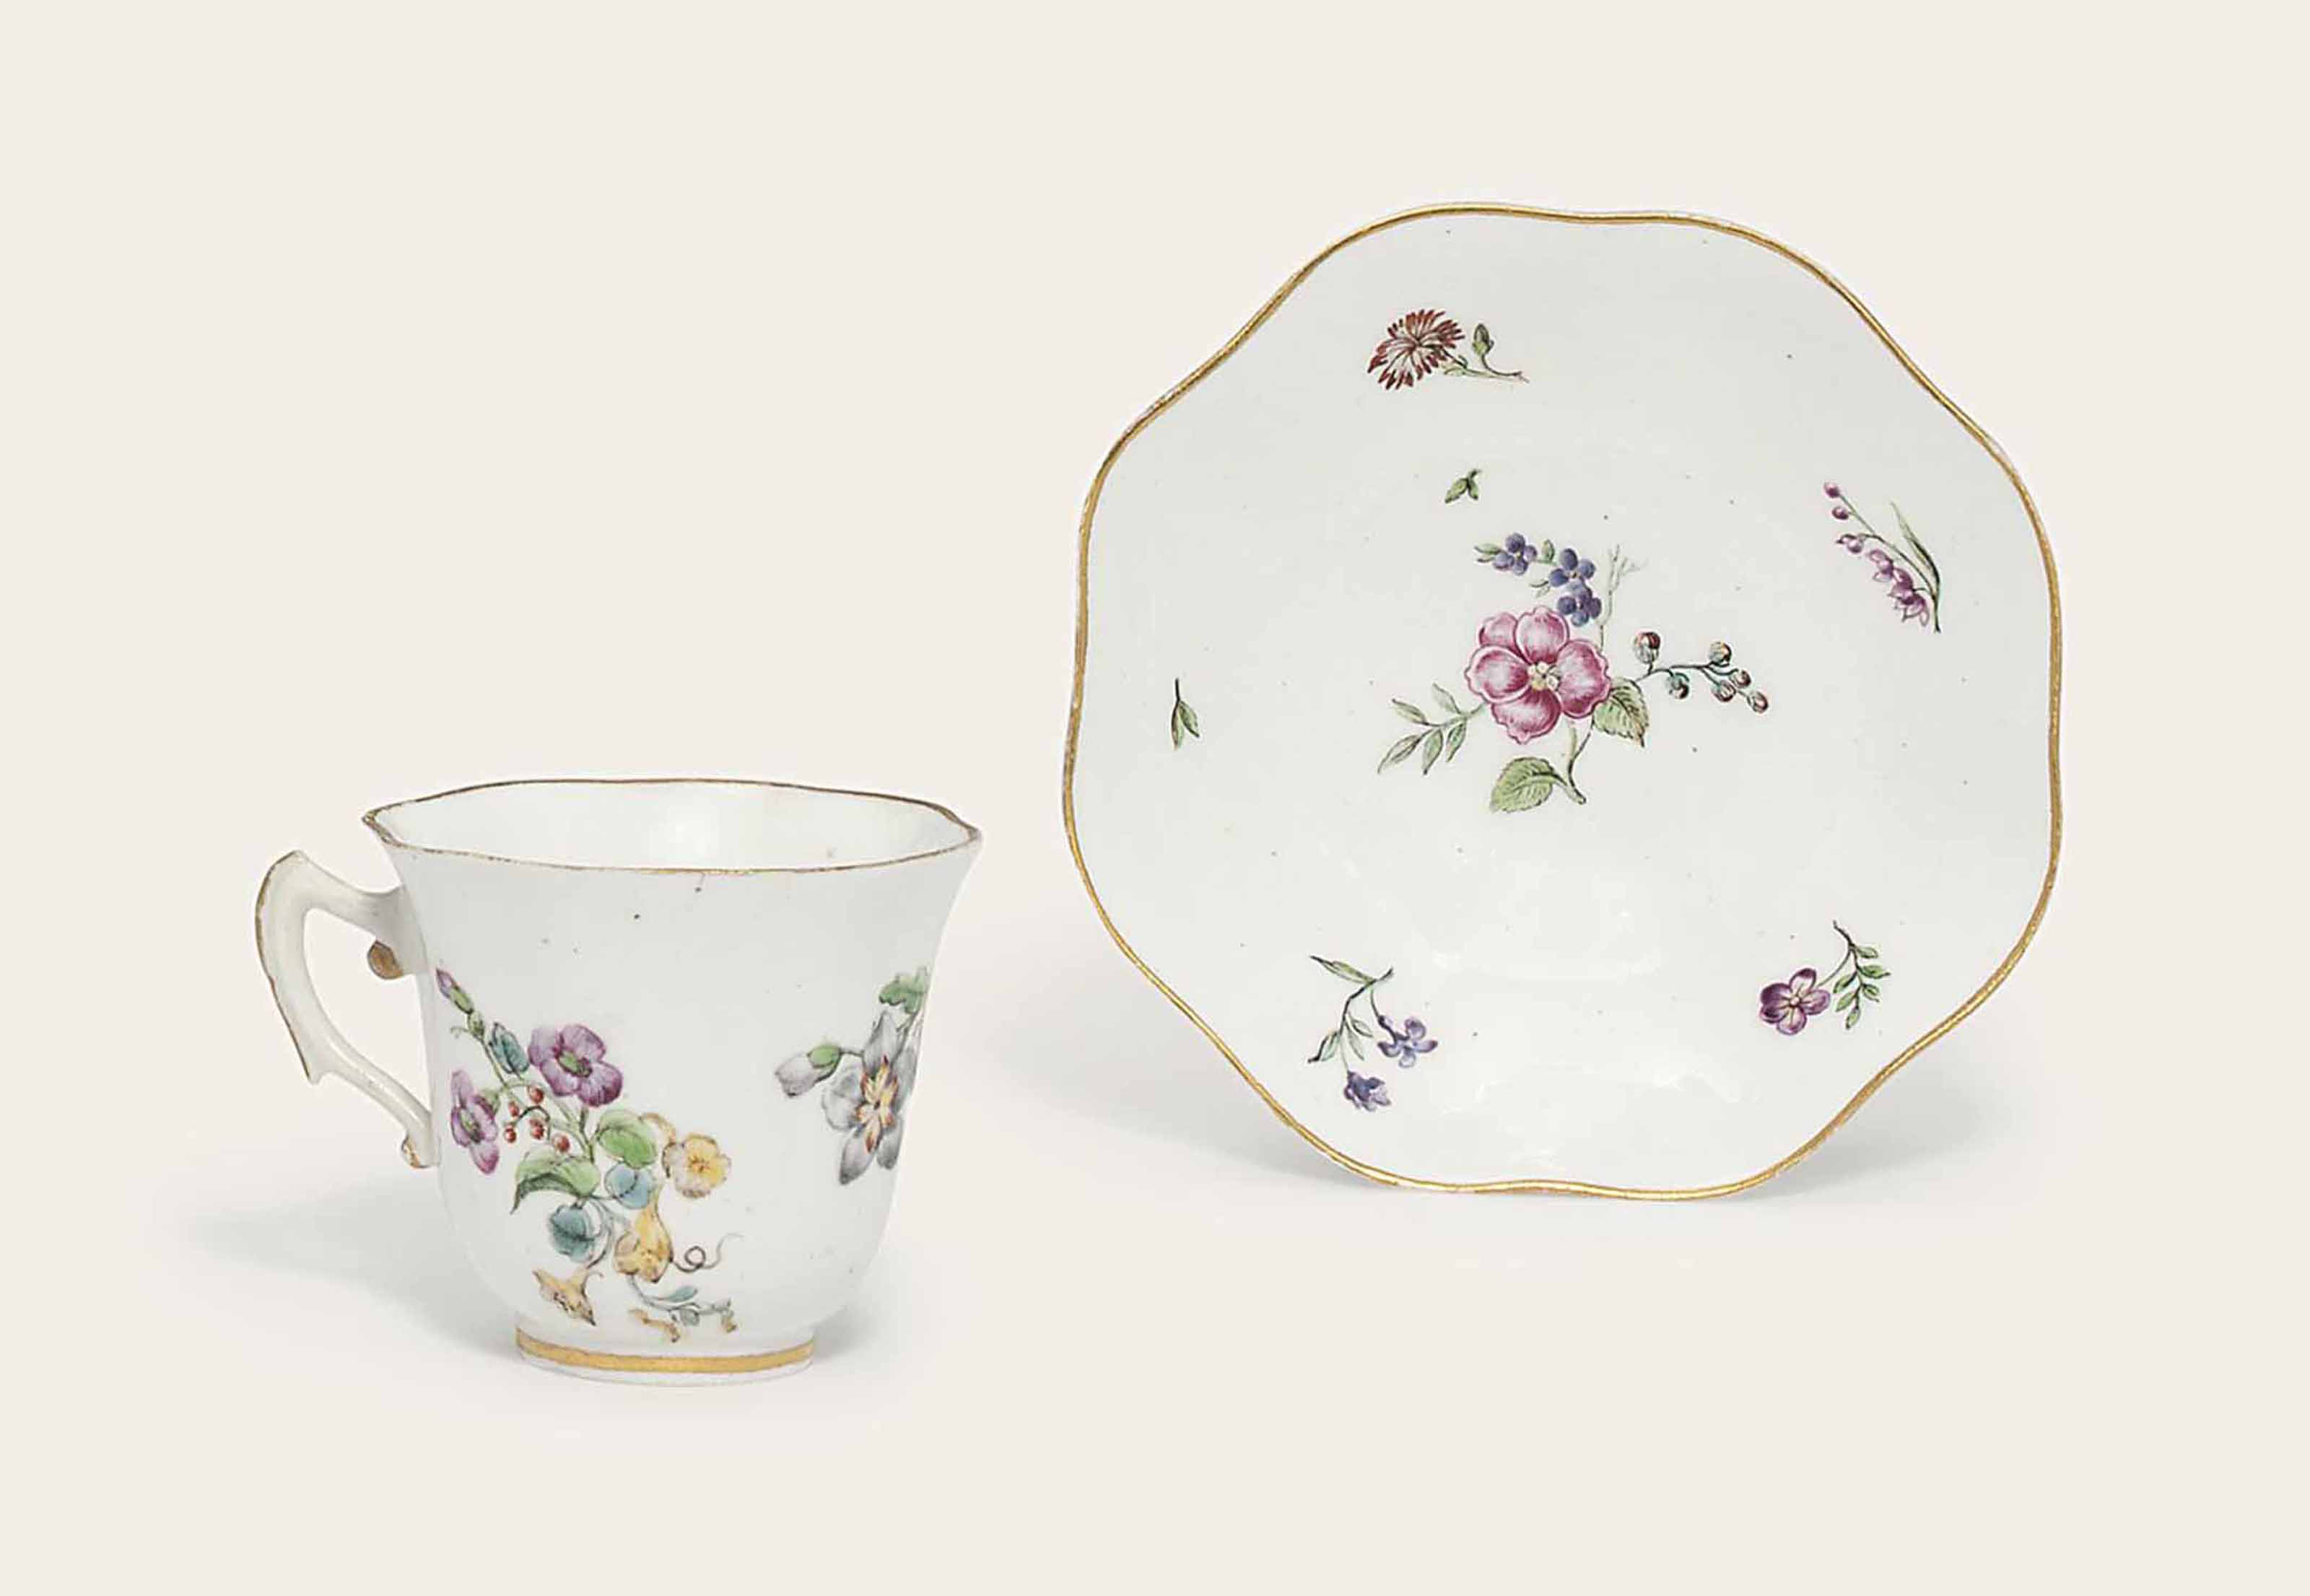 A VINCENNES CUP AND A SAUCER (